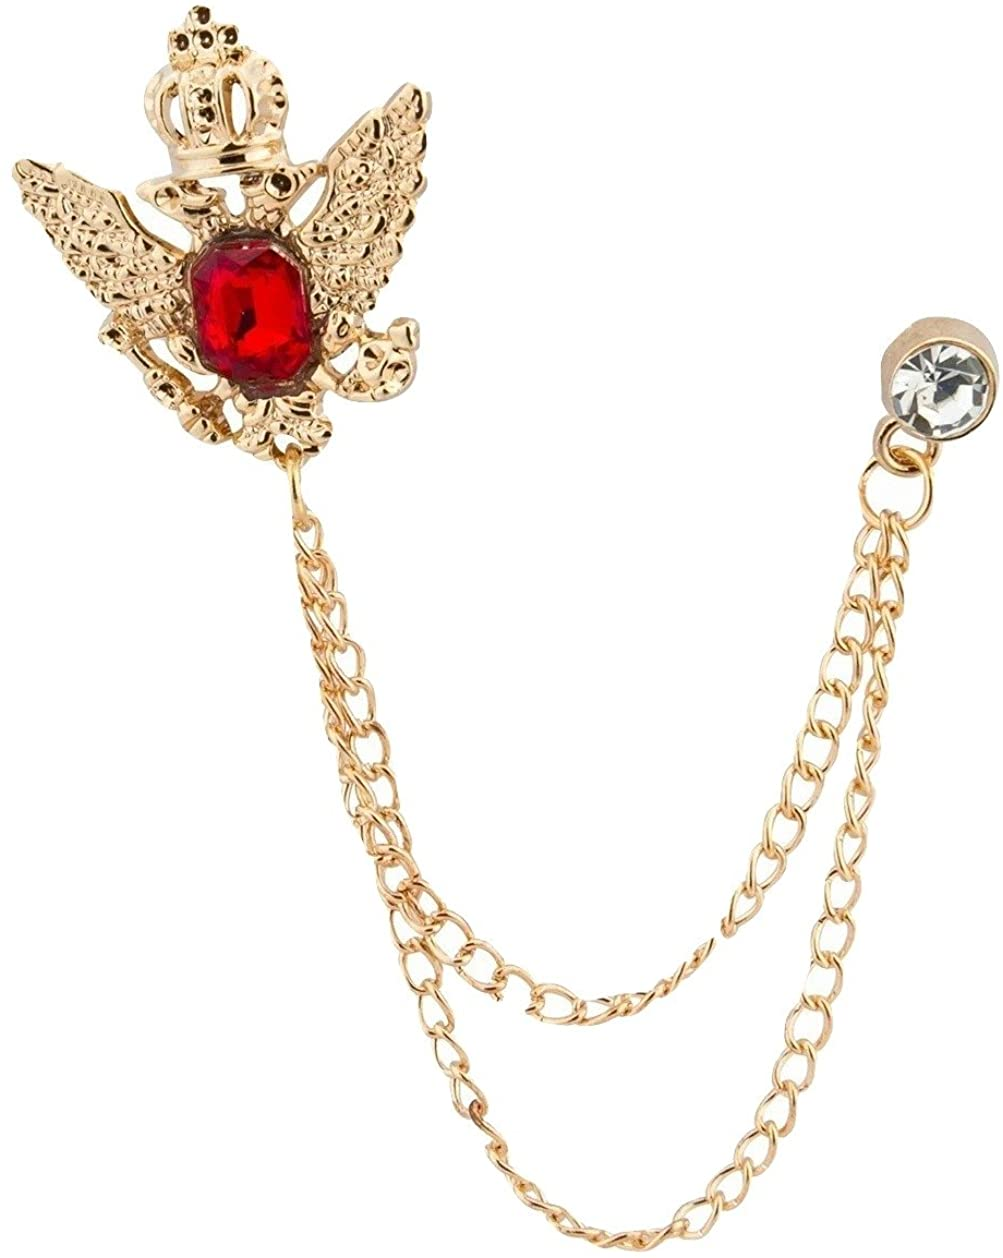 Knighthood Men's Golden Crown Stone with Hanging Chain Brooch Golden